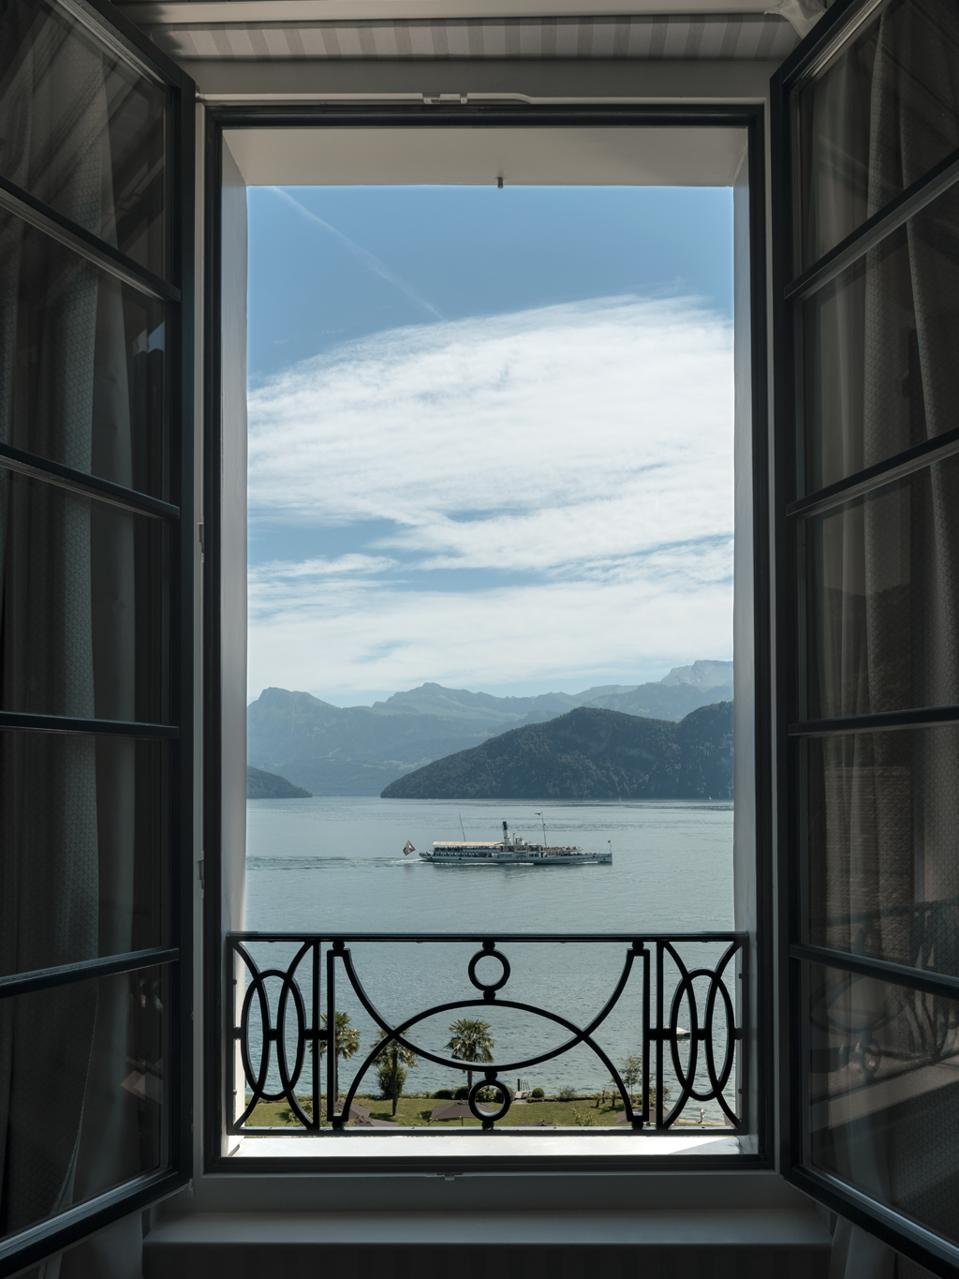 Room with a view at Chenot Palace Weggis